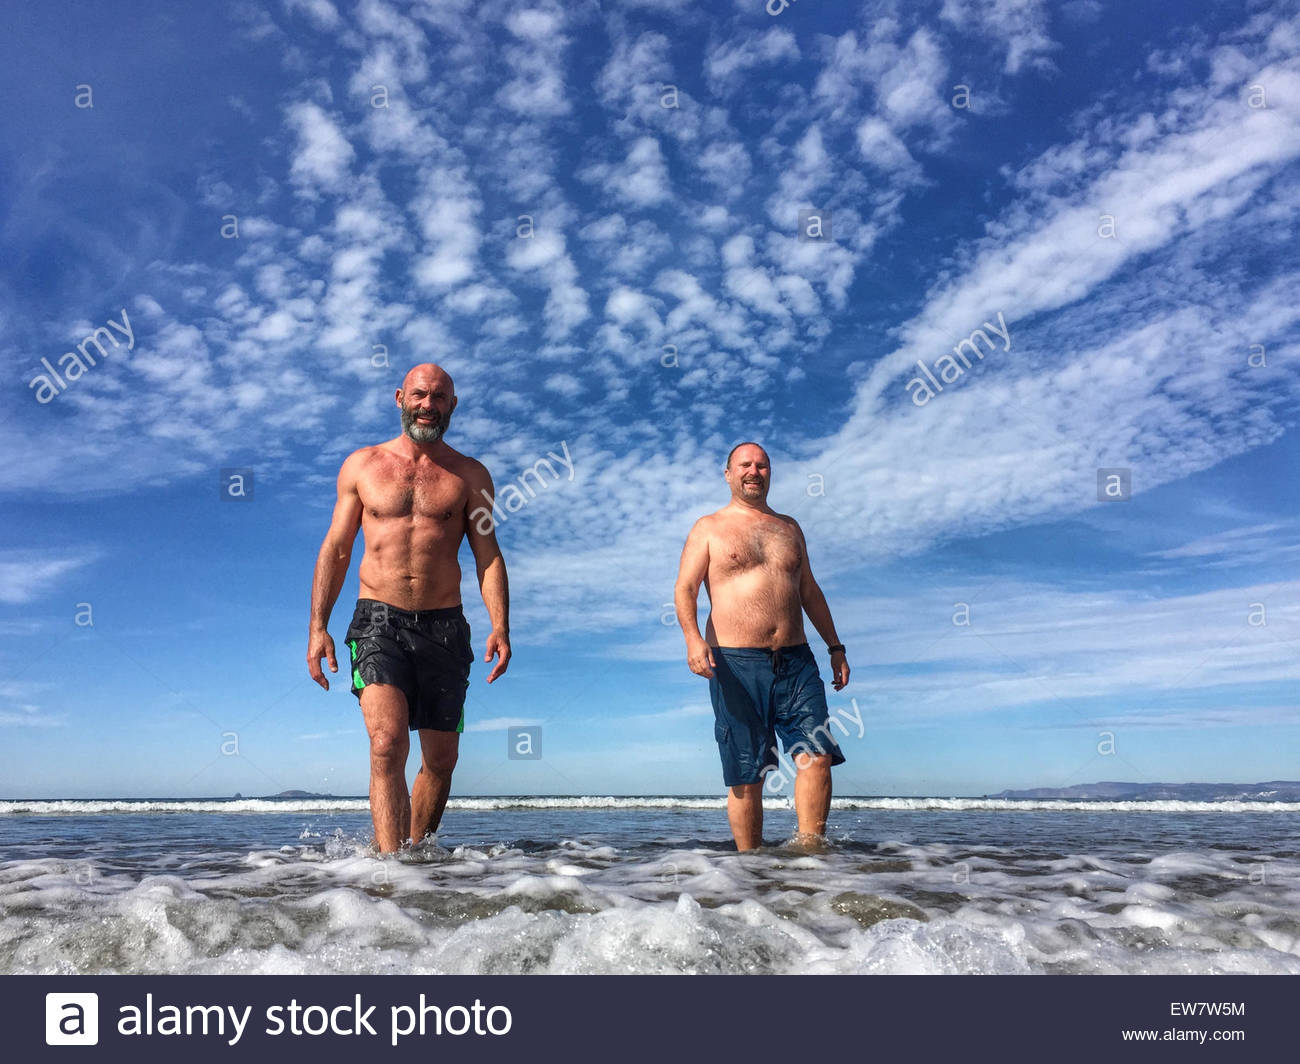 Two men walking out of the ocean, Ensenada, Mexico - Stock Image